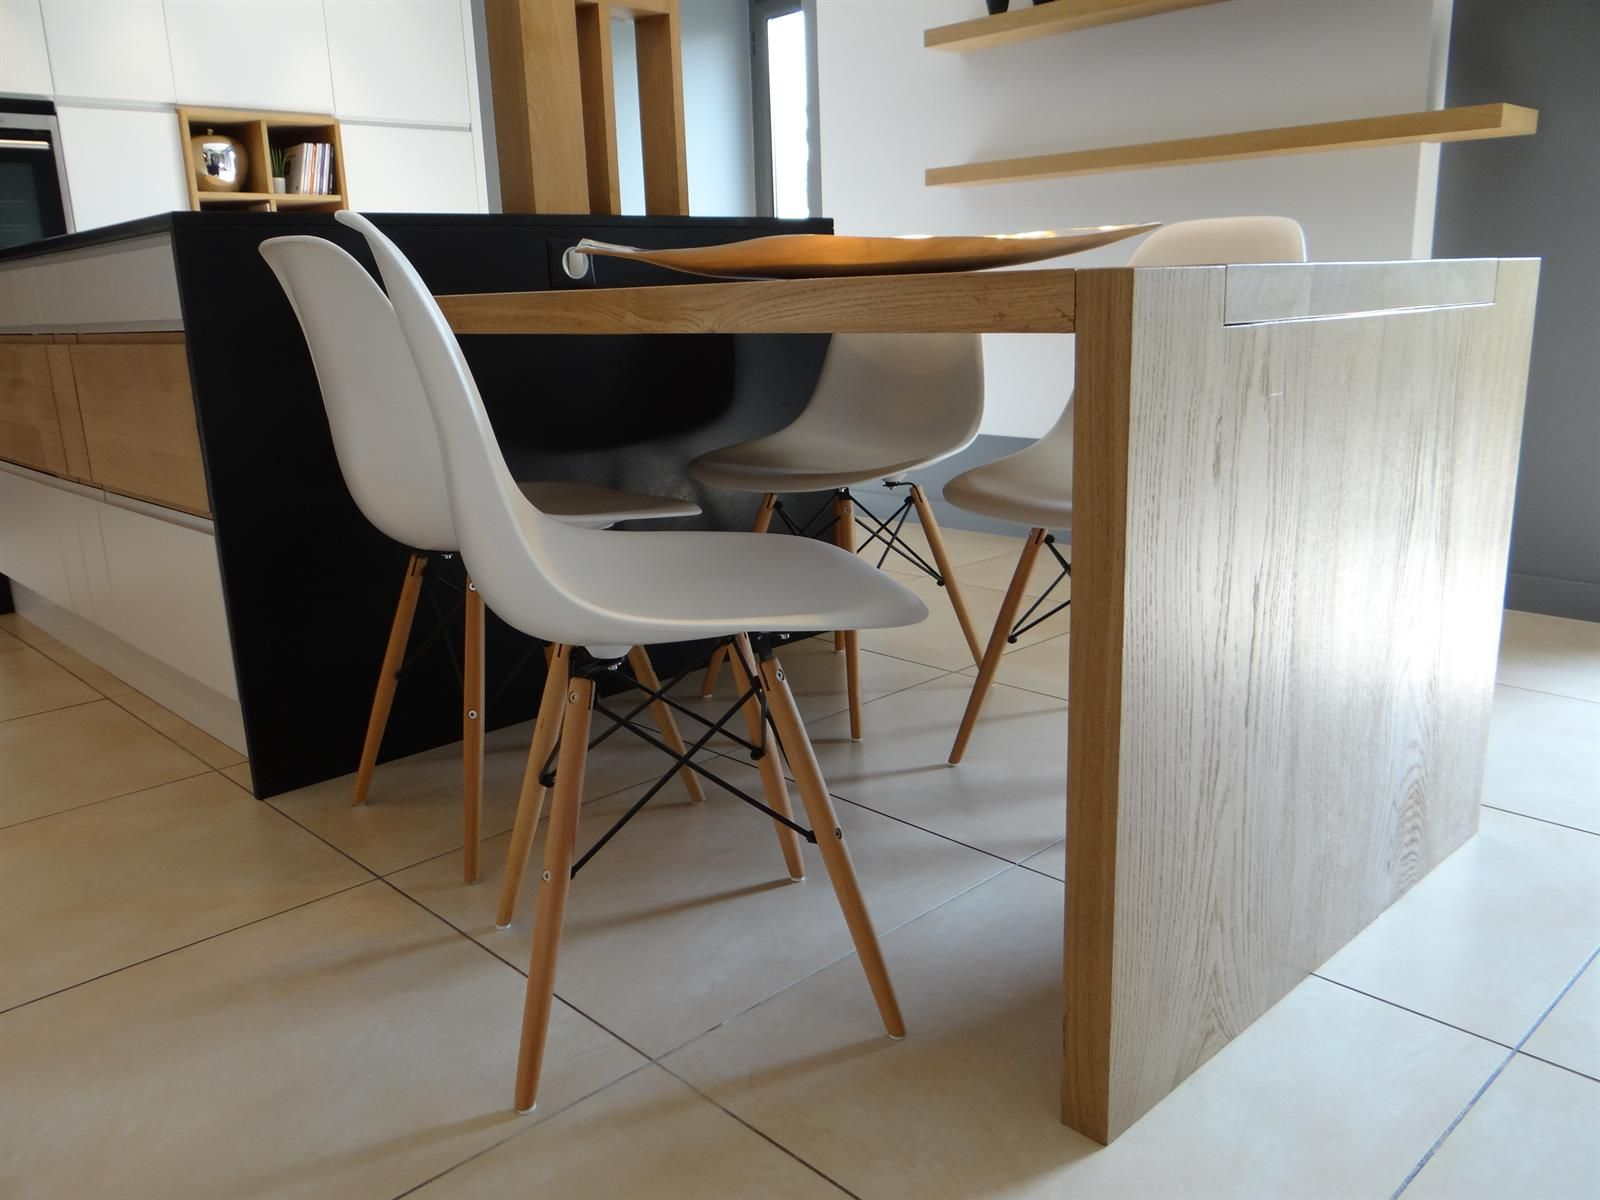 La table de cuisine en bois clair prolonge l 39 lot central for Ilot central table escamotable